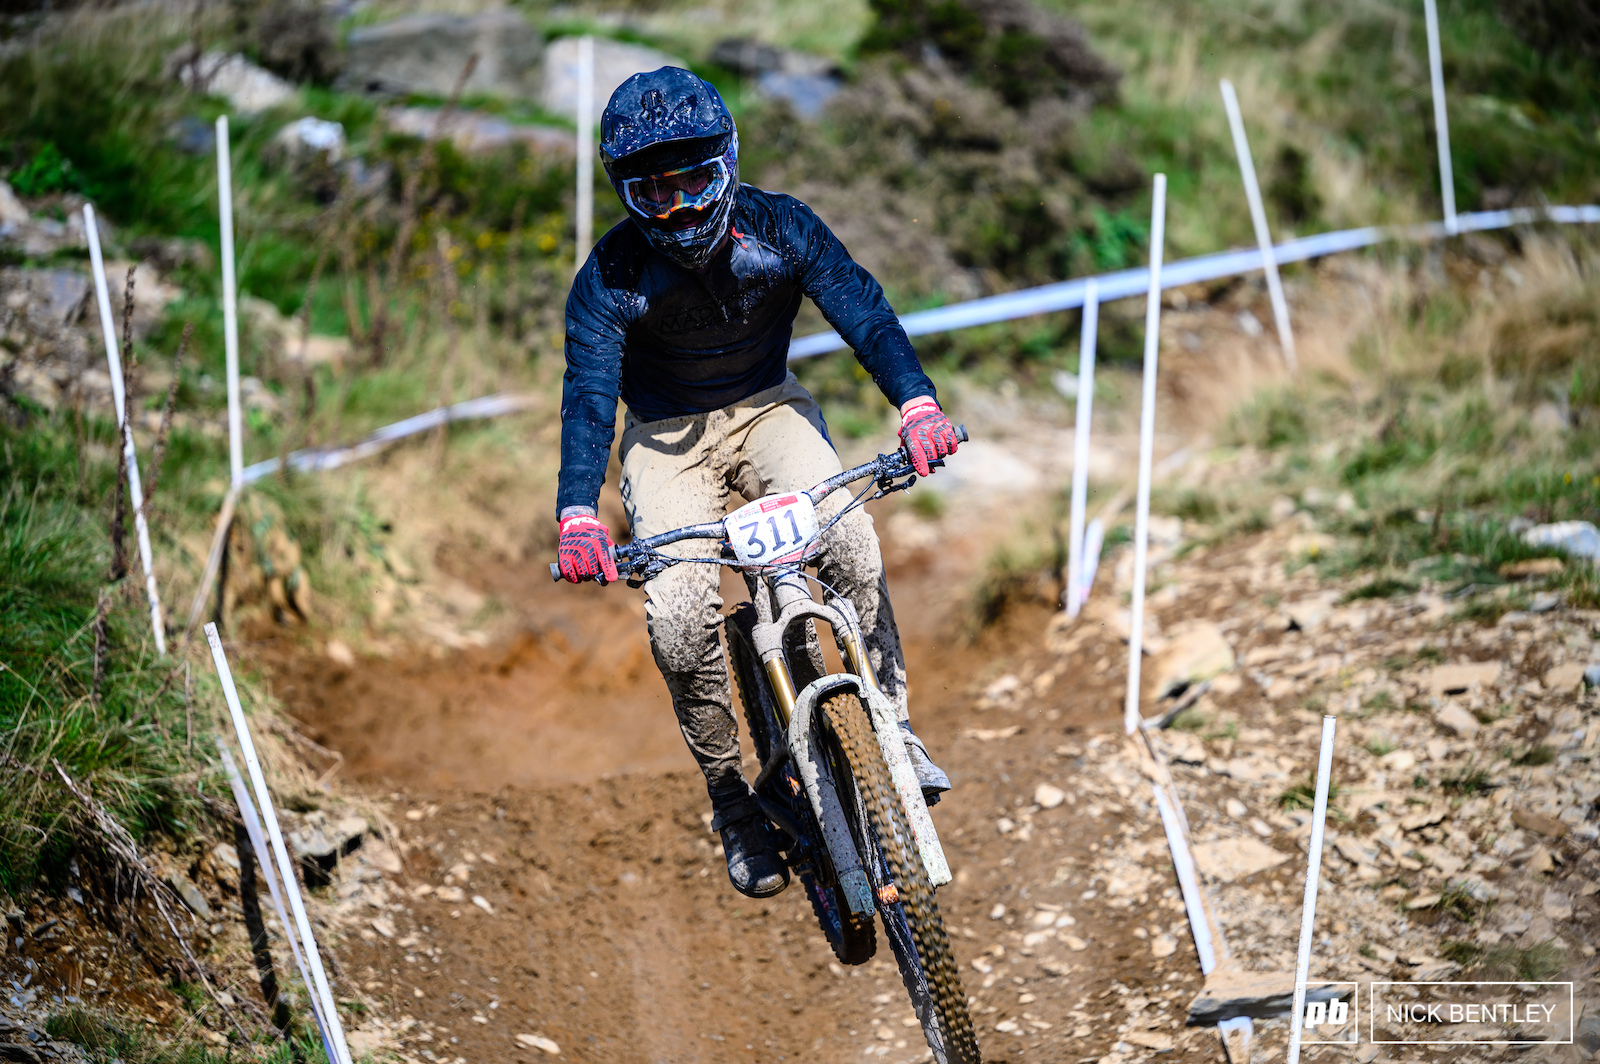 Chubbie Hammond on his way to second place in the Senior Field pushing hard on his enduro bike